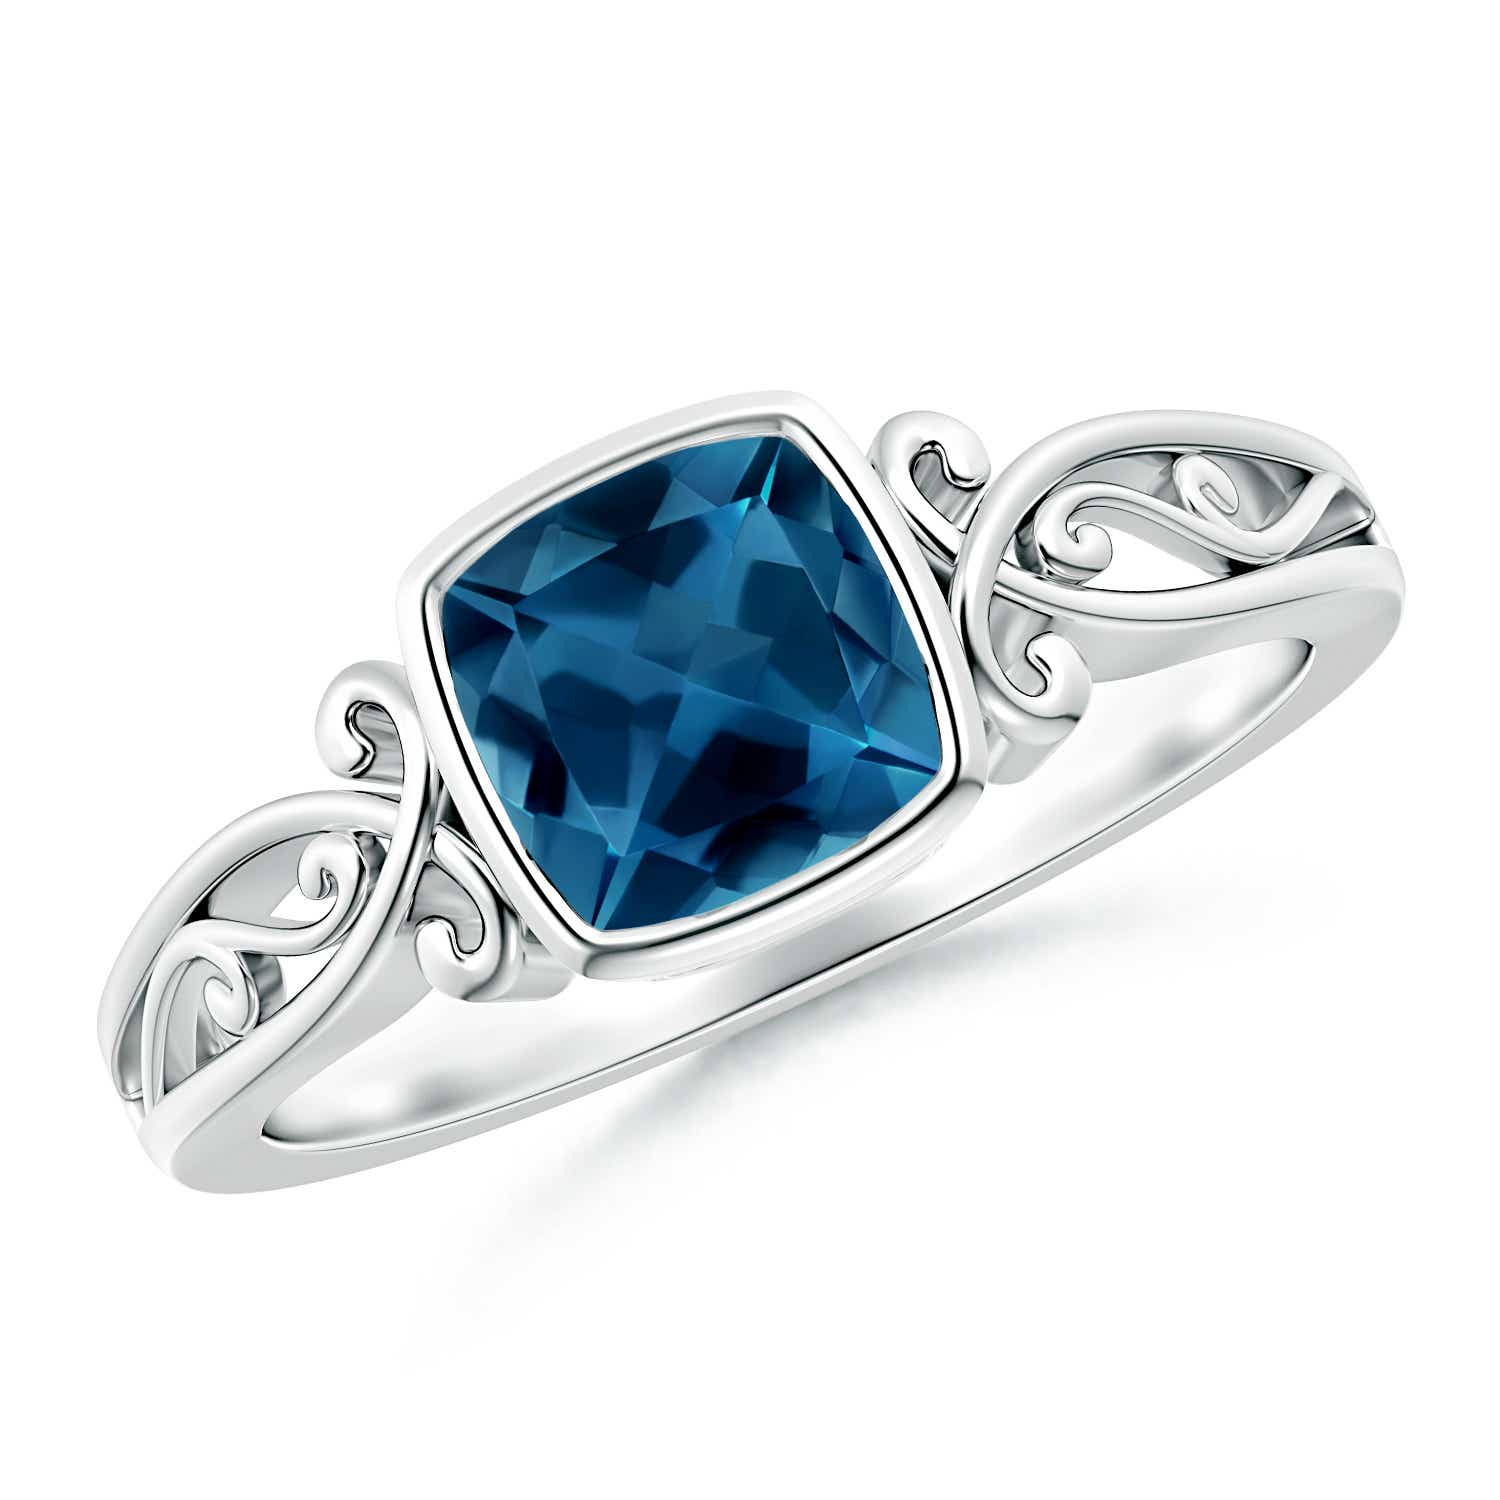 Vintage Style Cushion London Blue Topaz Solitaire Ring - Angara.com